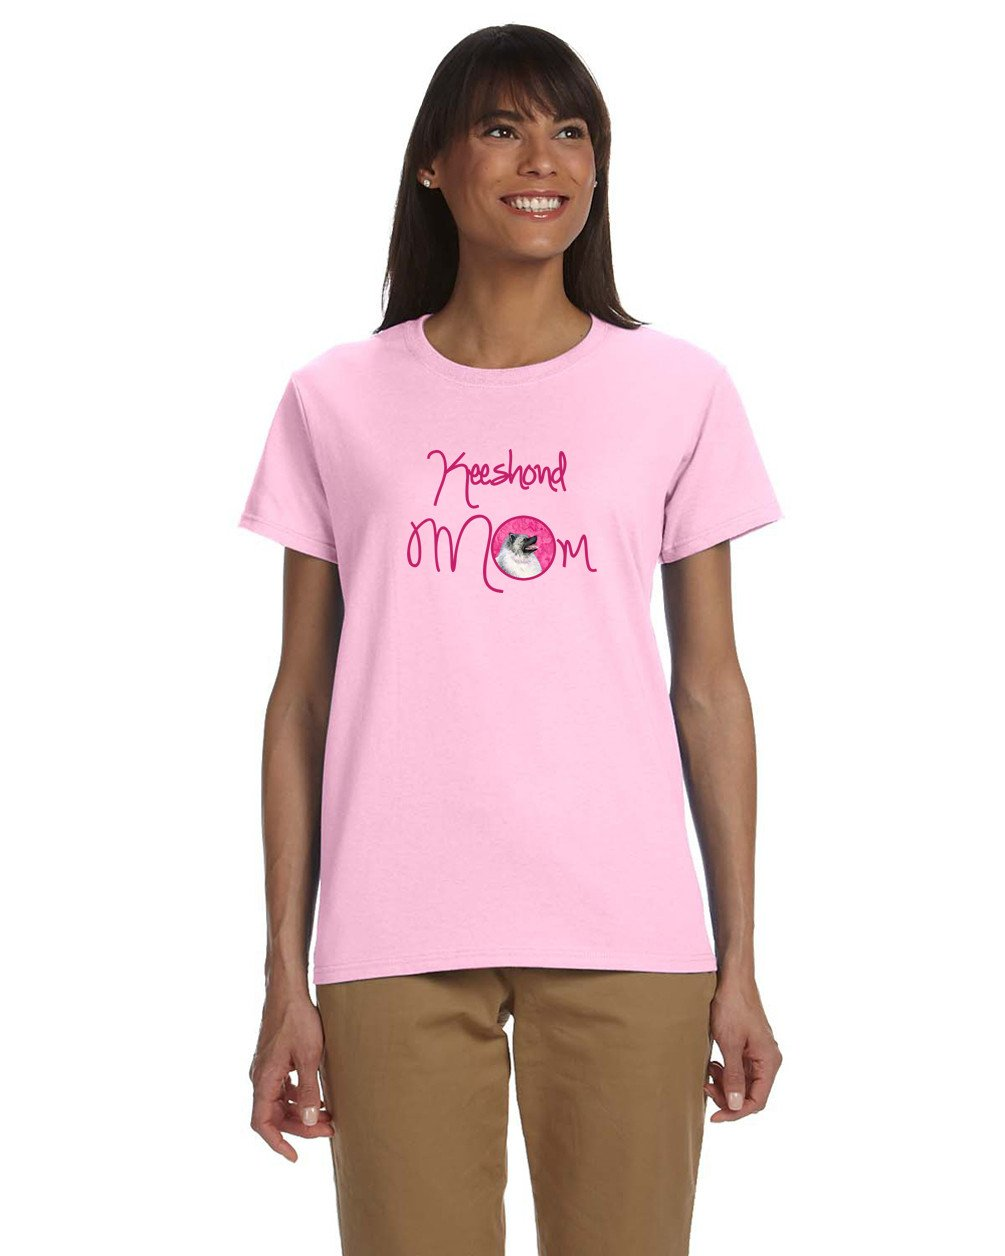 Pink Keeshond Mom T-shirt Ladies Cut Short Sleeve Medium SS4764PK-978-M by Caroline's Treasures